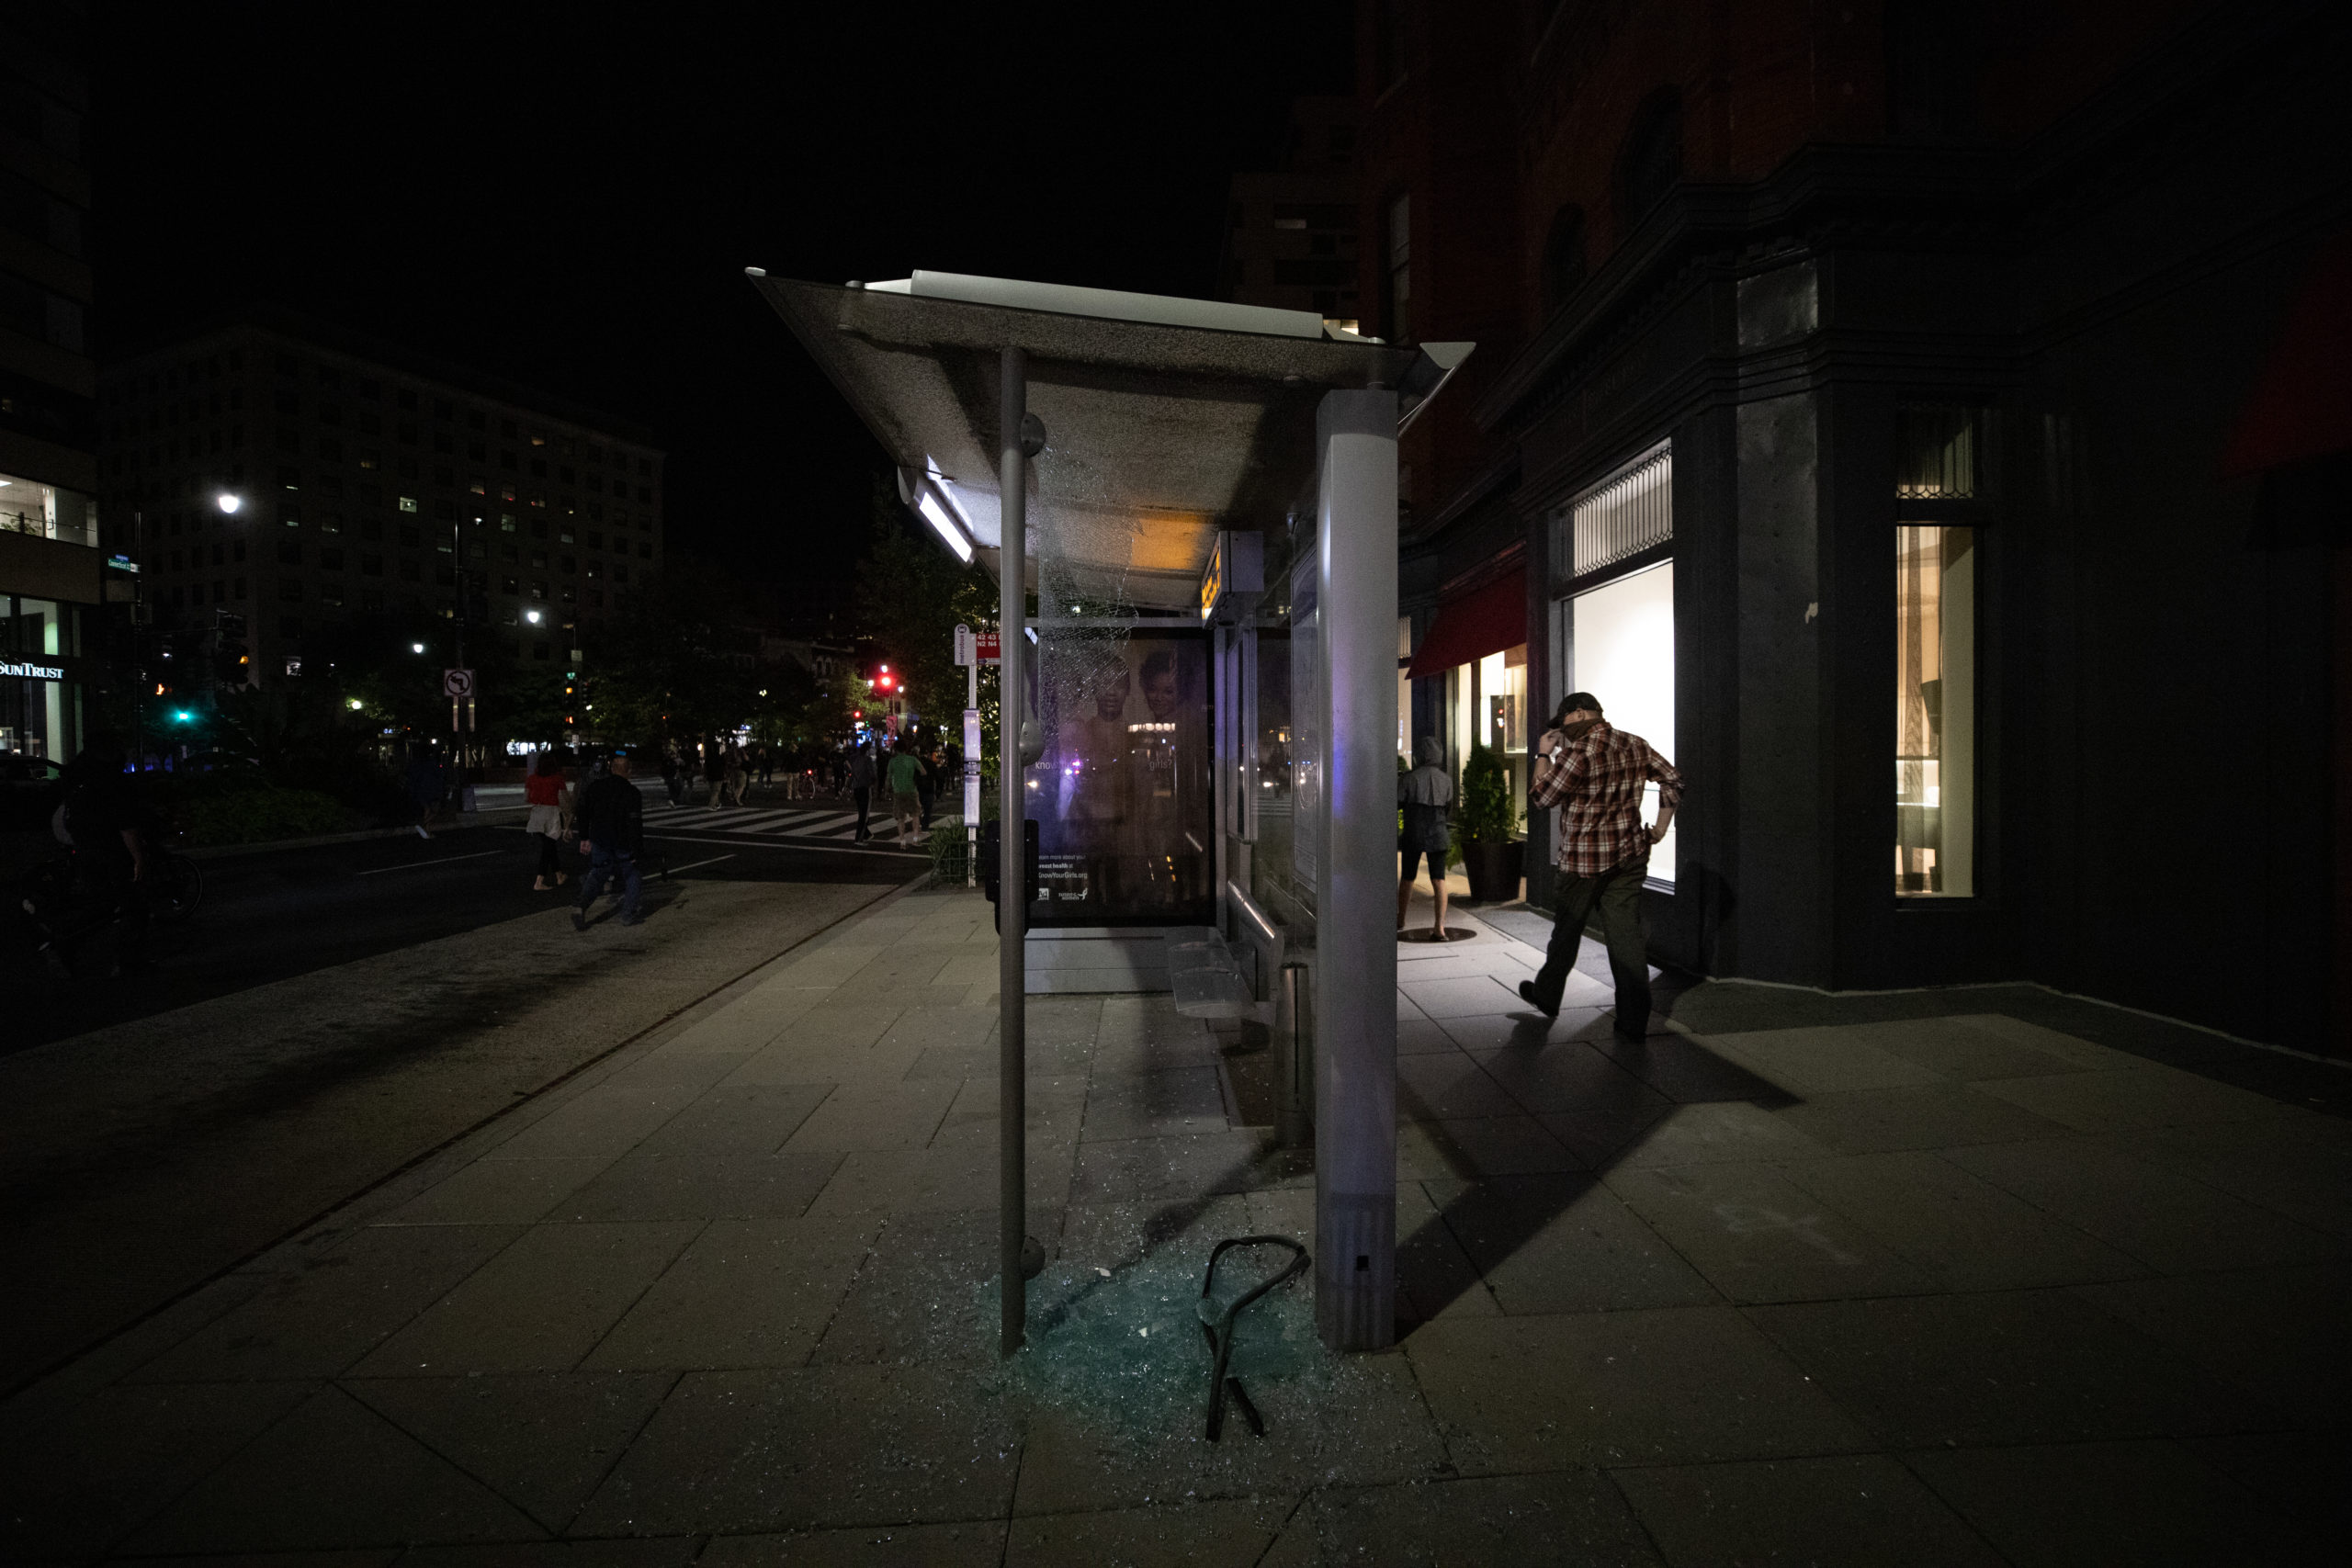 A protester smashed a glass panel of a bus stop in Washington, D.C. on Sept. 23. (Photo: Kaylee Greenlee / DCNF)